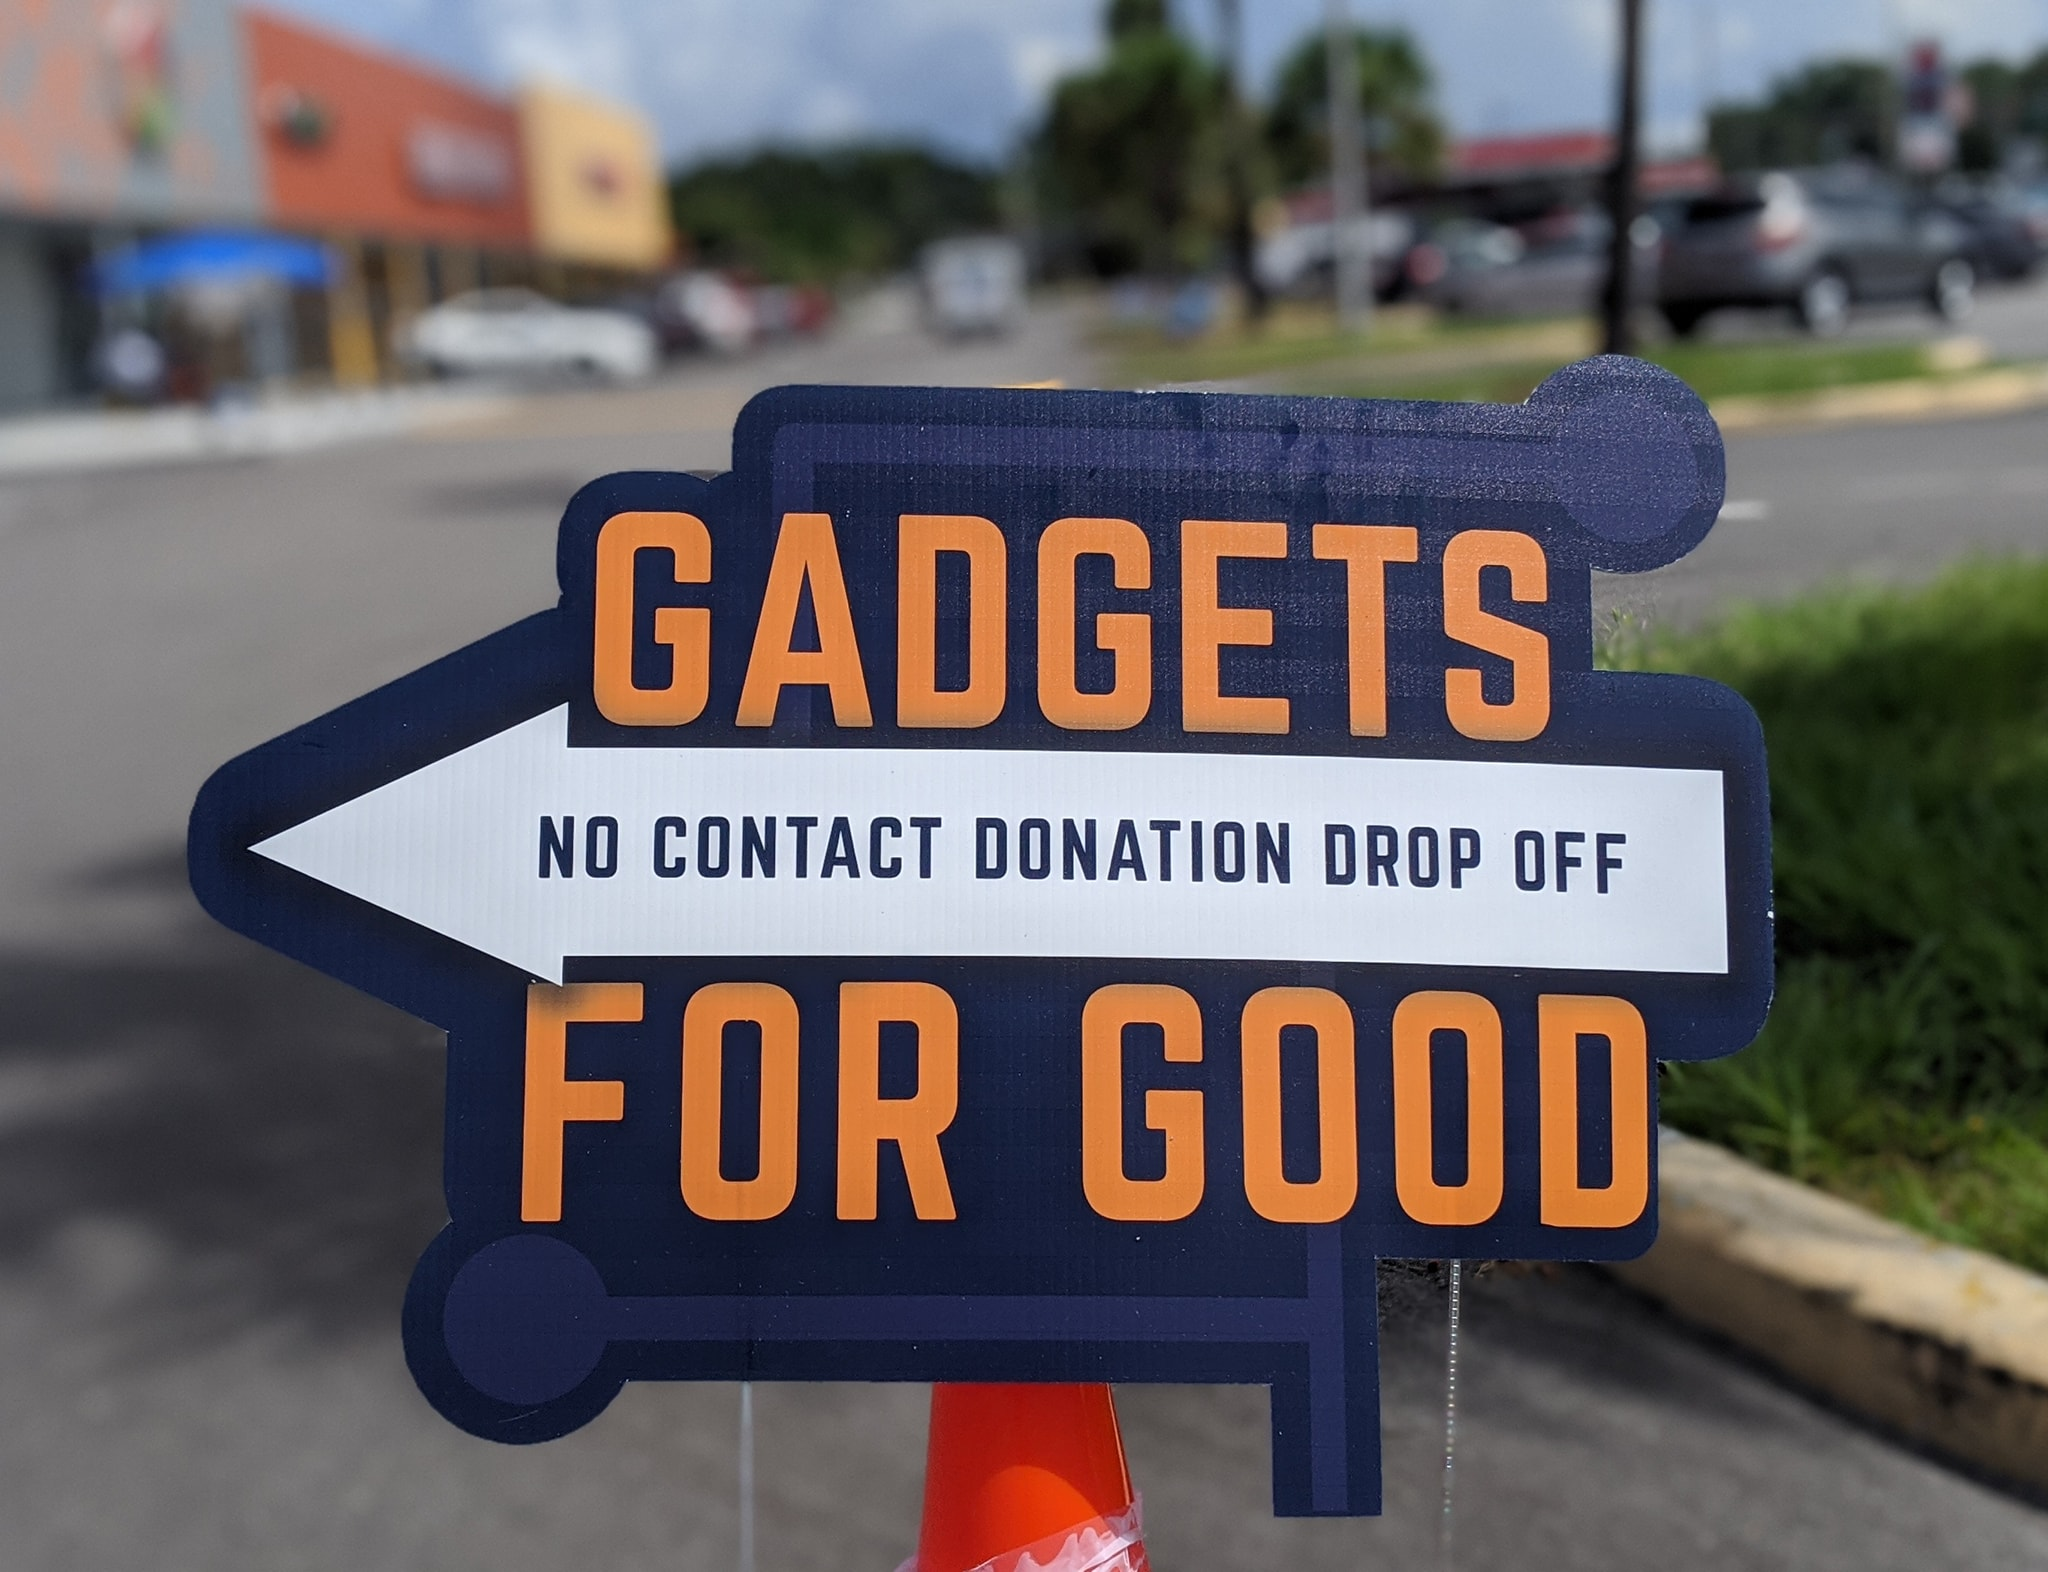 Gadgets for Good sign